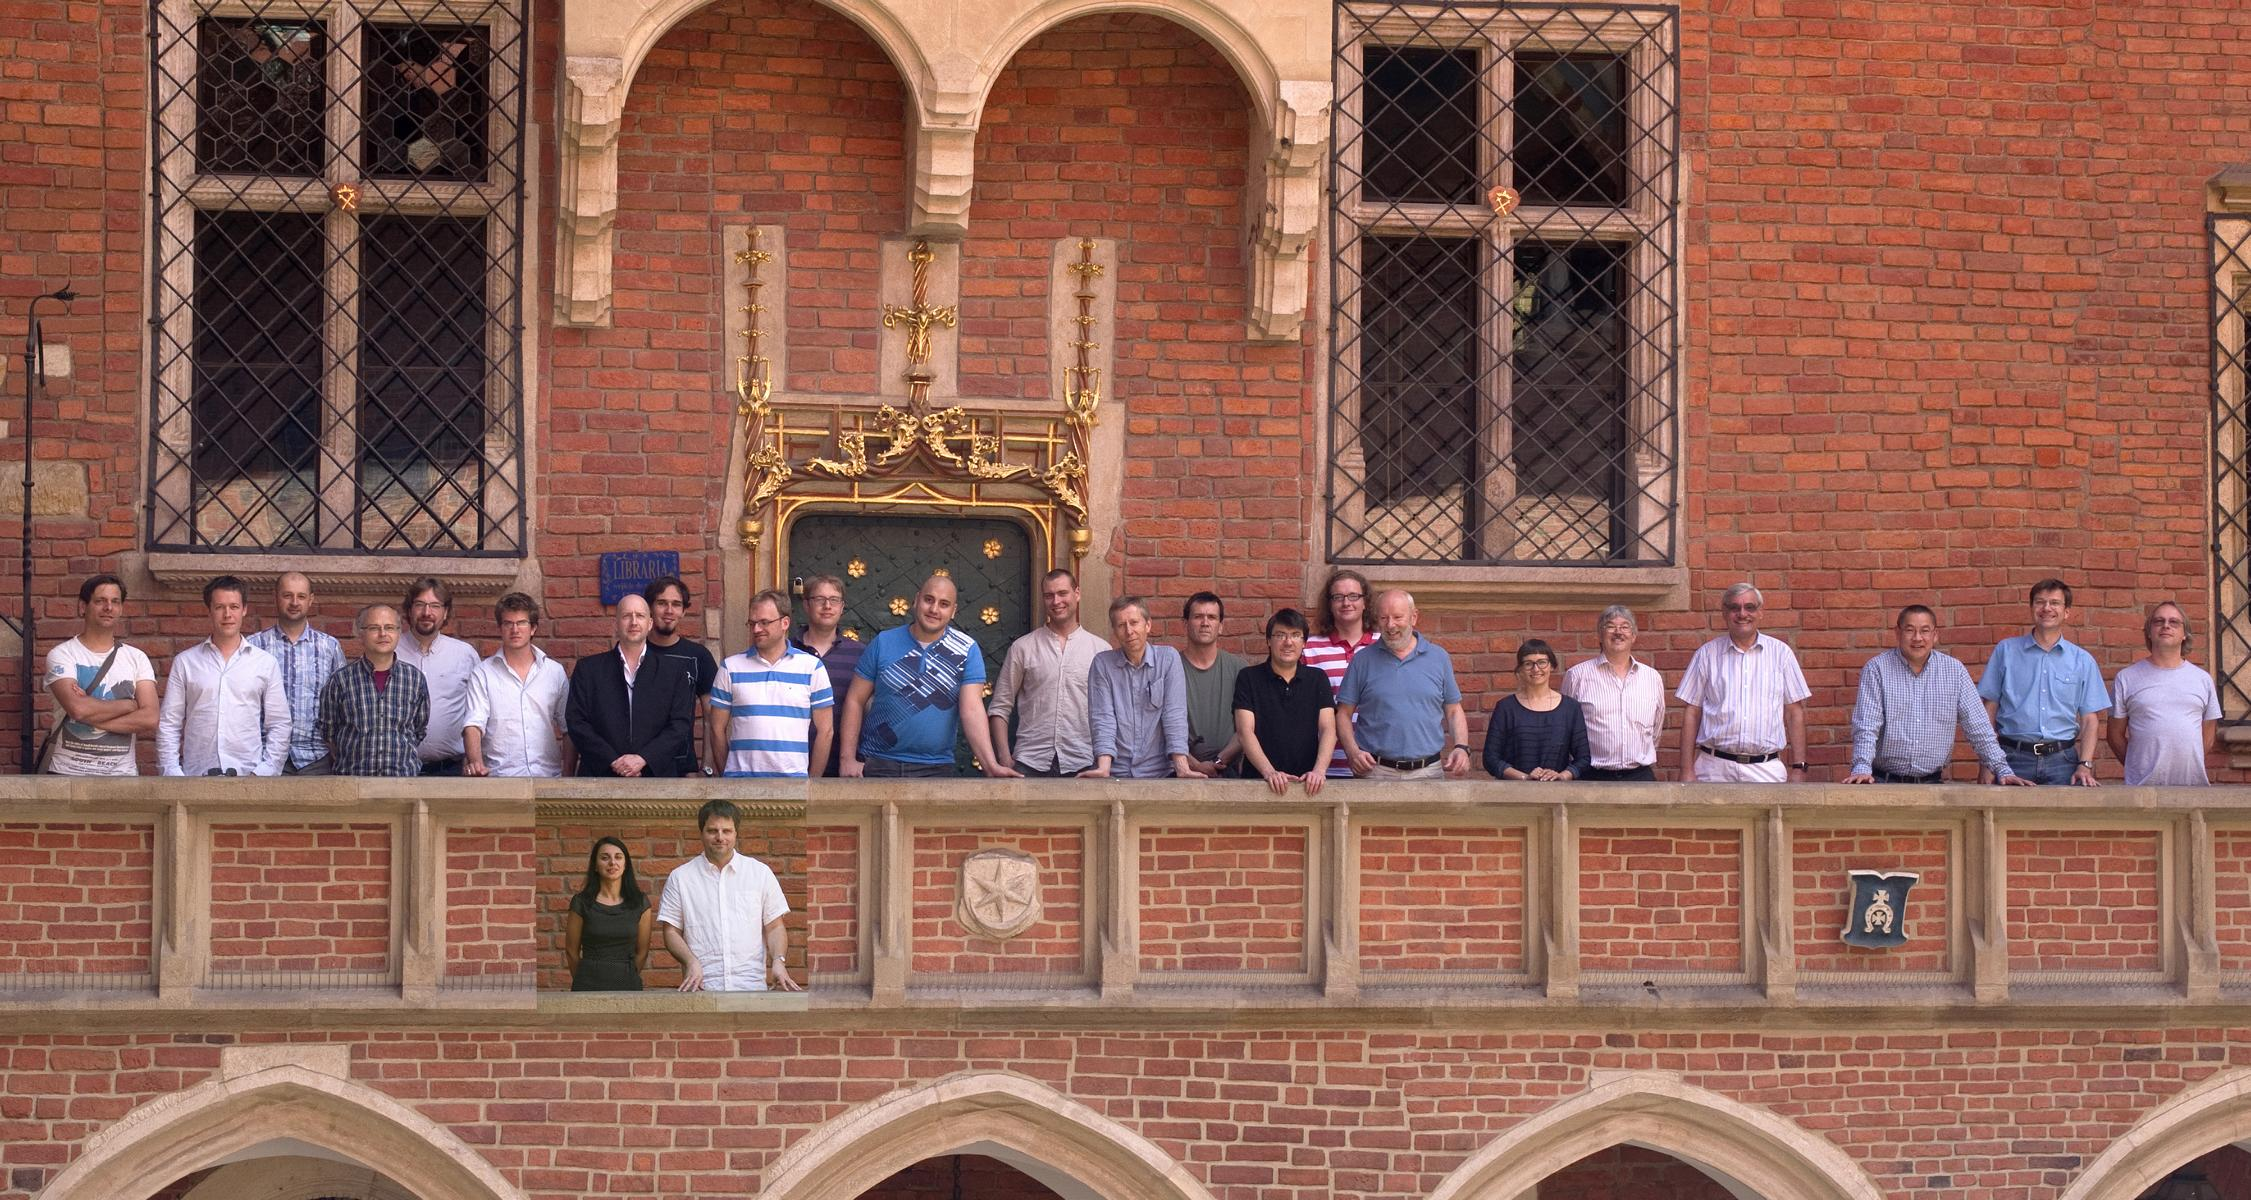 Picture taken at our collaboration meeting at JU Krakow, 2. July 2013